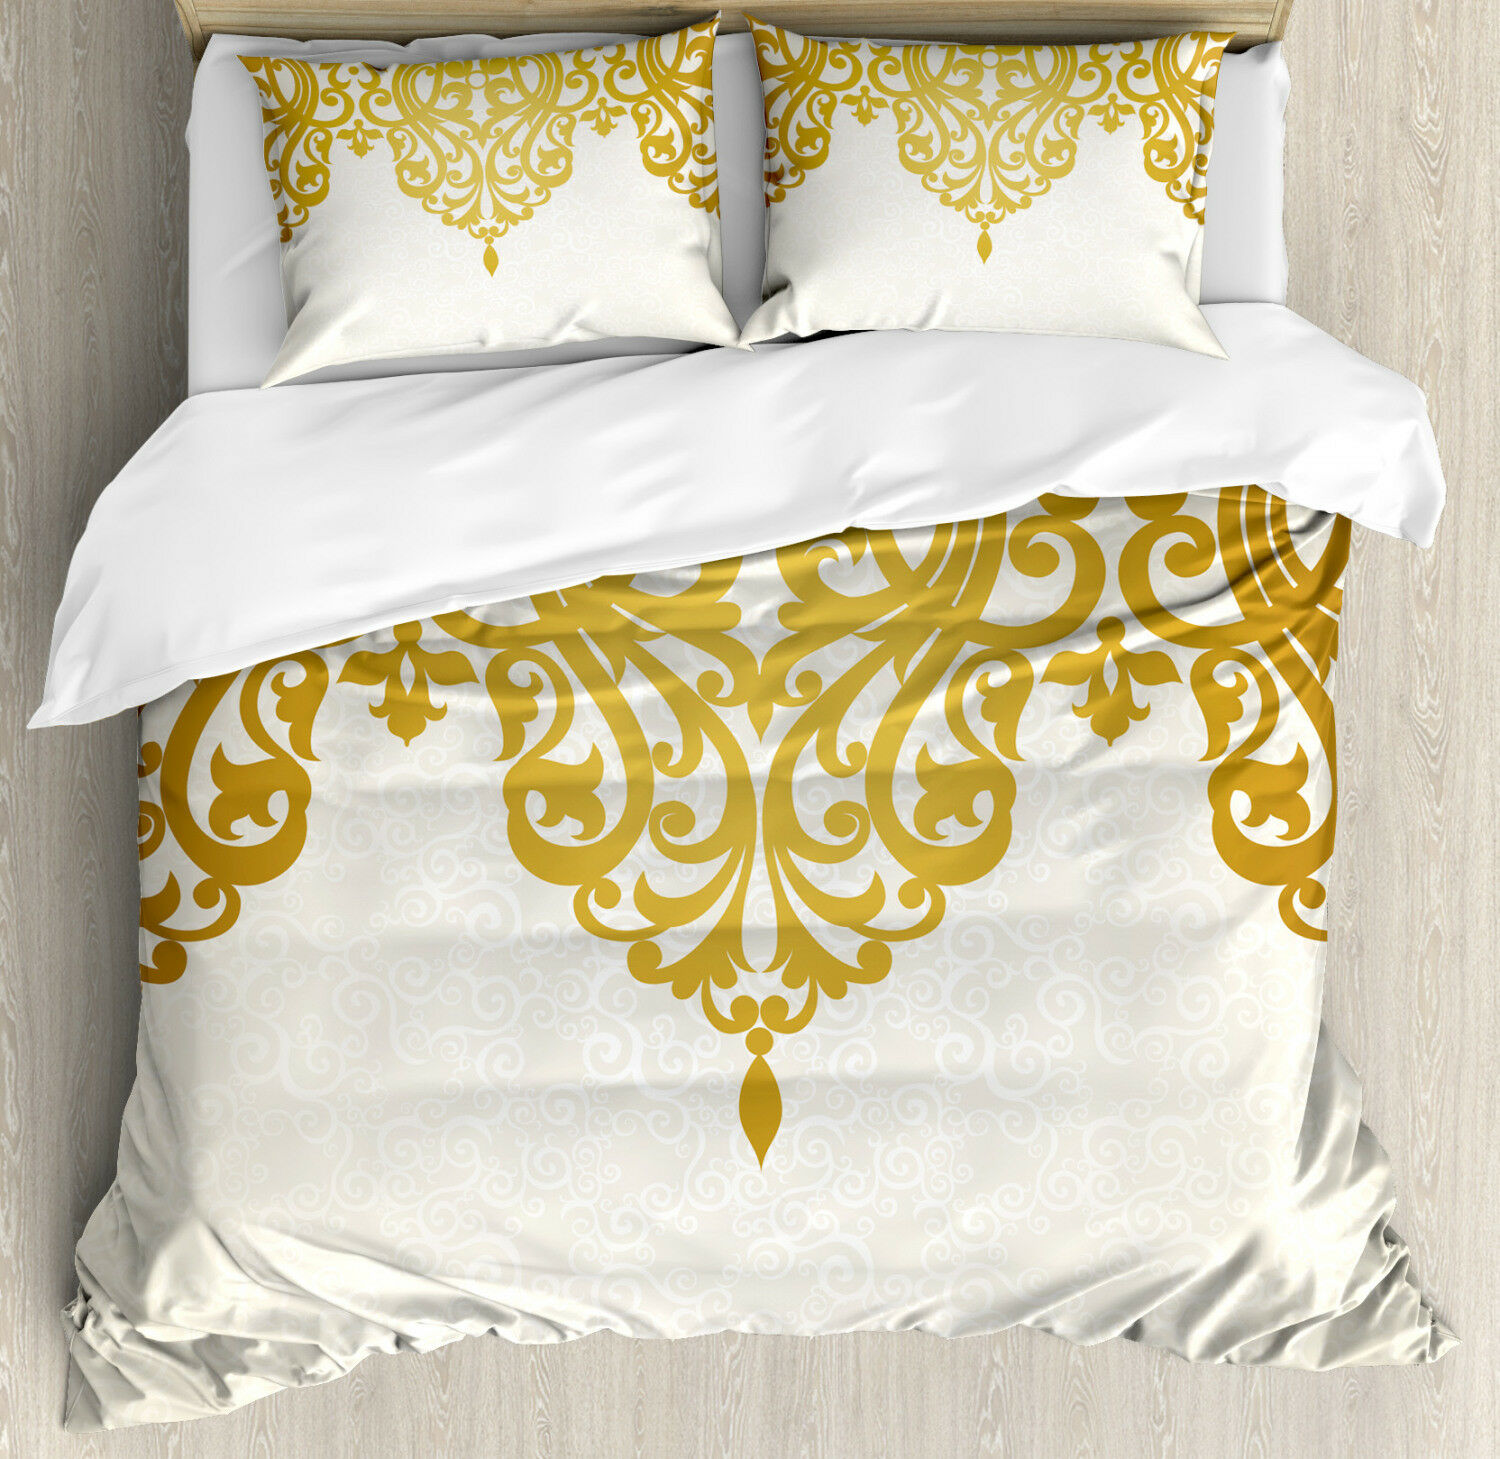 Victorian Duvet Cover Set with Pillow Shams Medieval Baroque Art Print